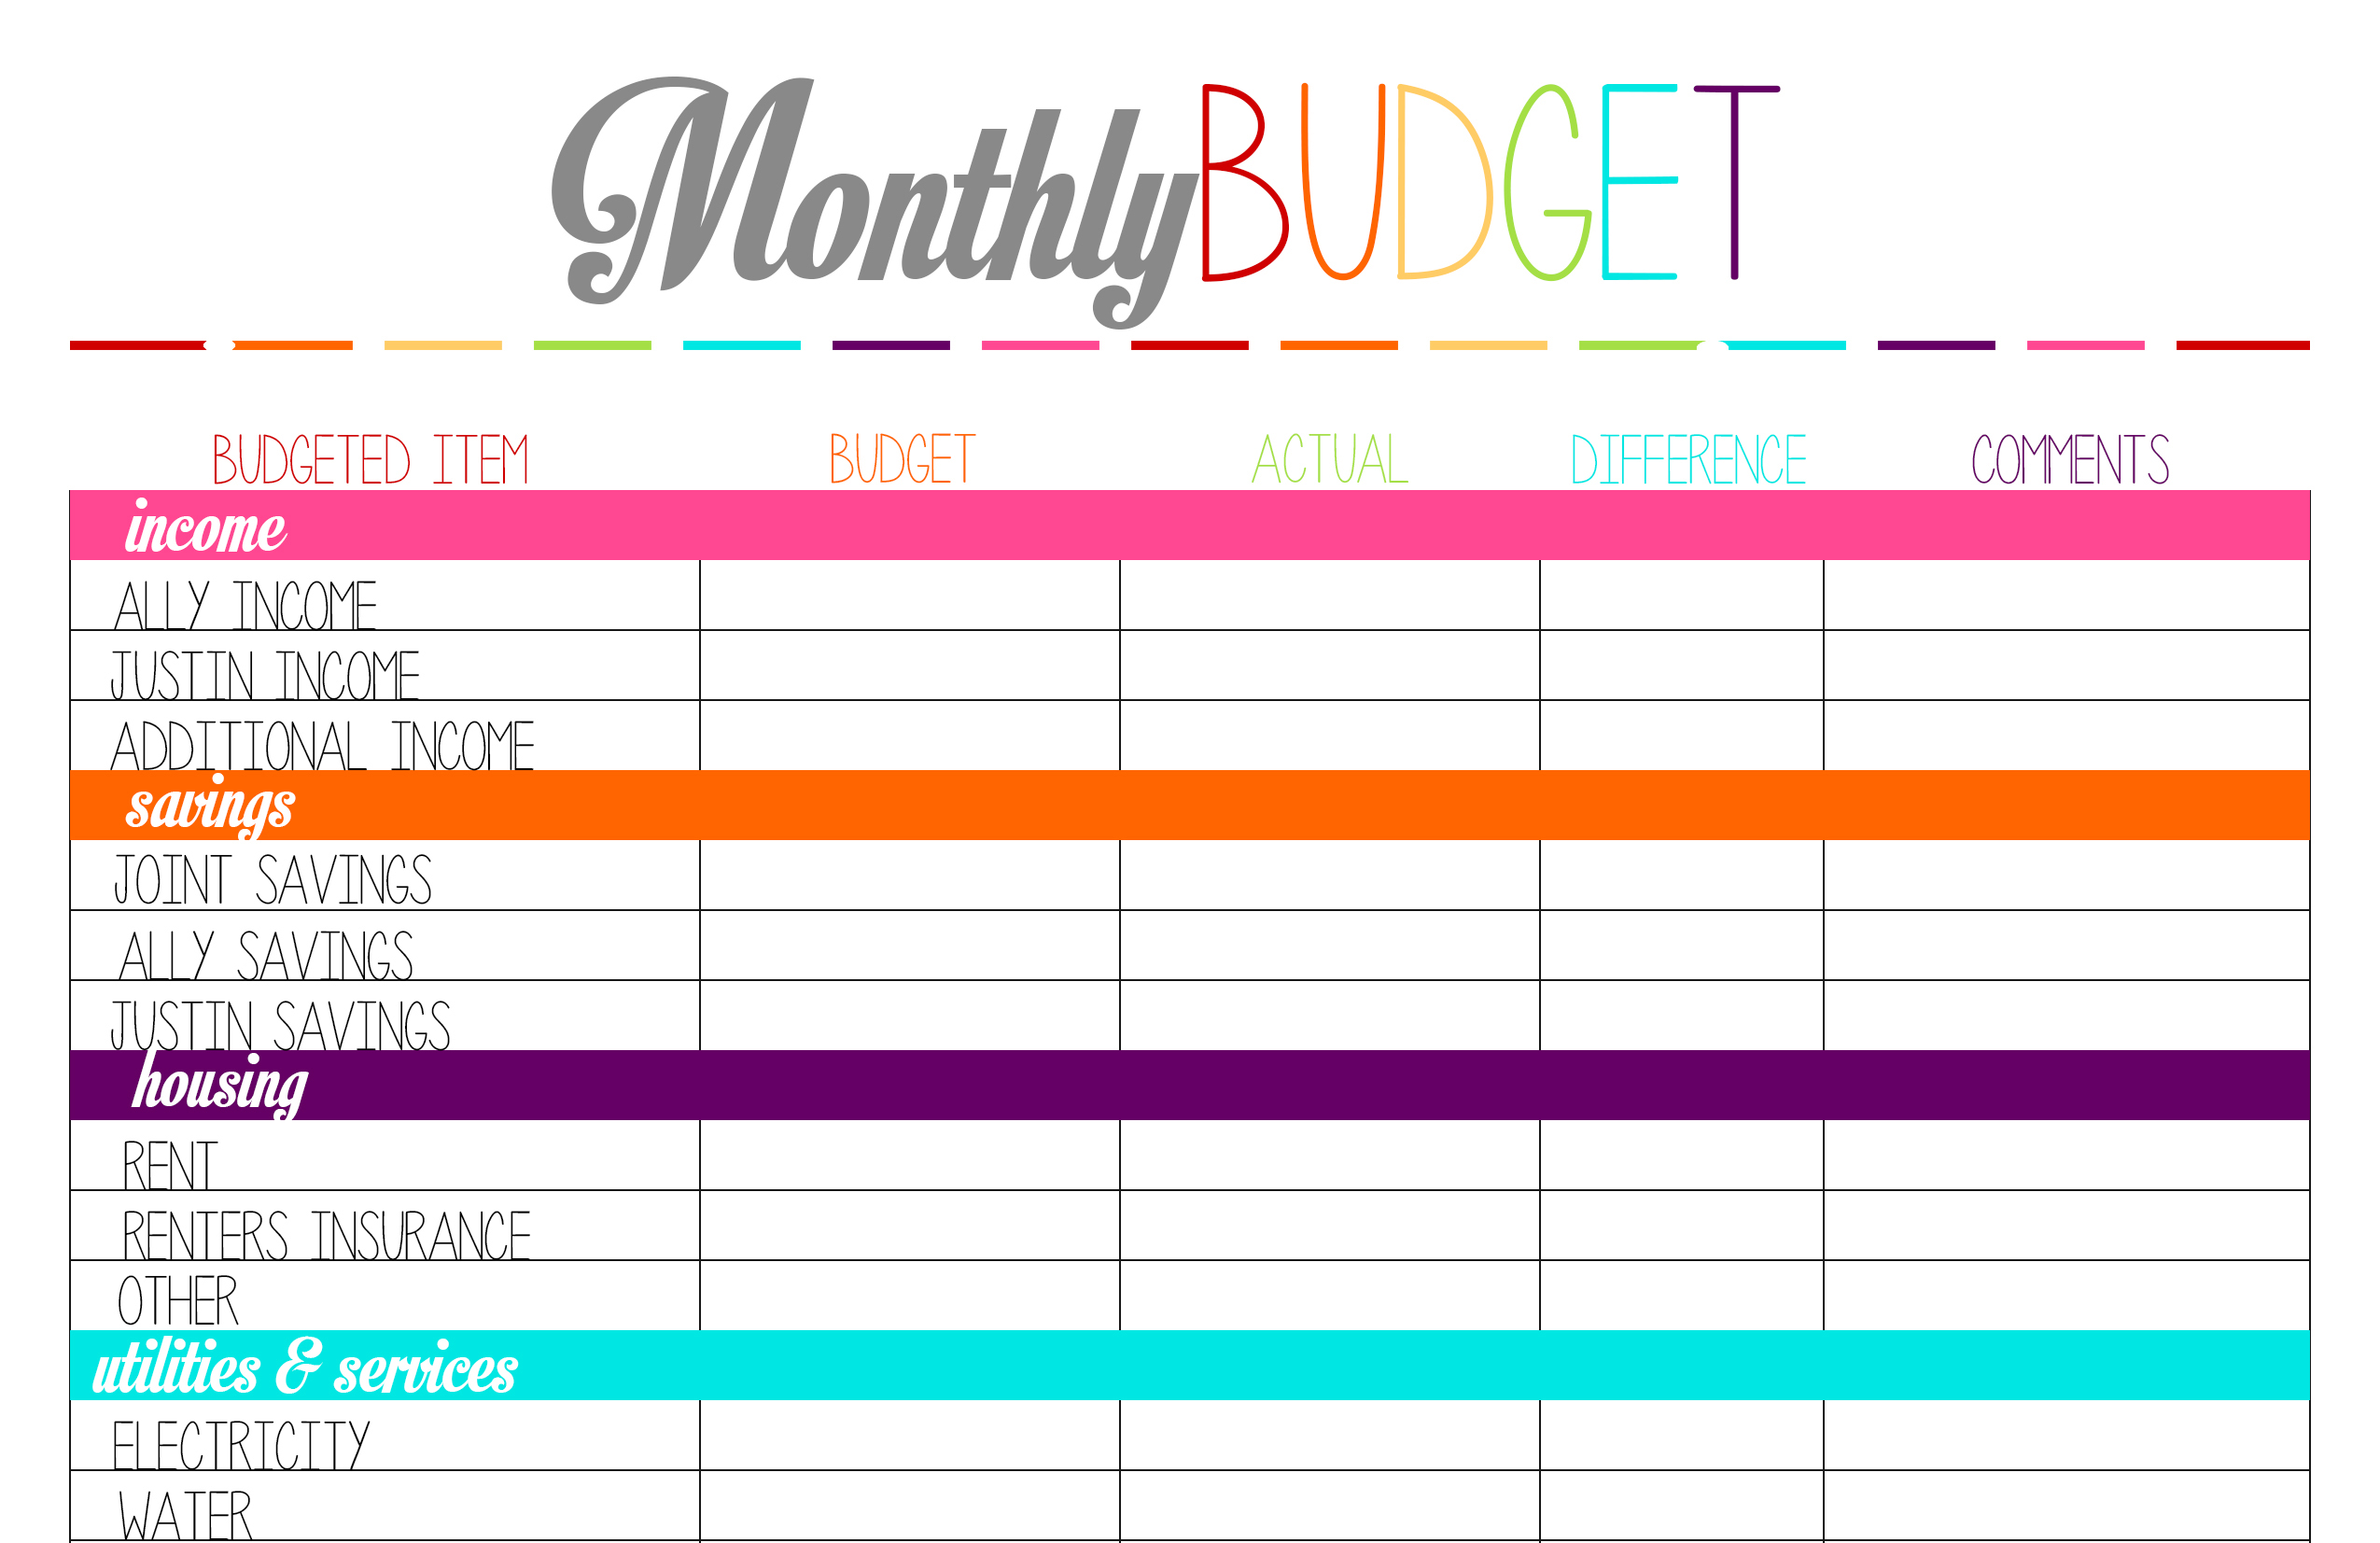 worksheet Printable Monthly Budget Worksheet printable monthly budget worksheet abitlikethis our homekeeping binder and embracing a fresh new take on budget